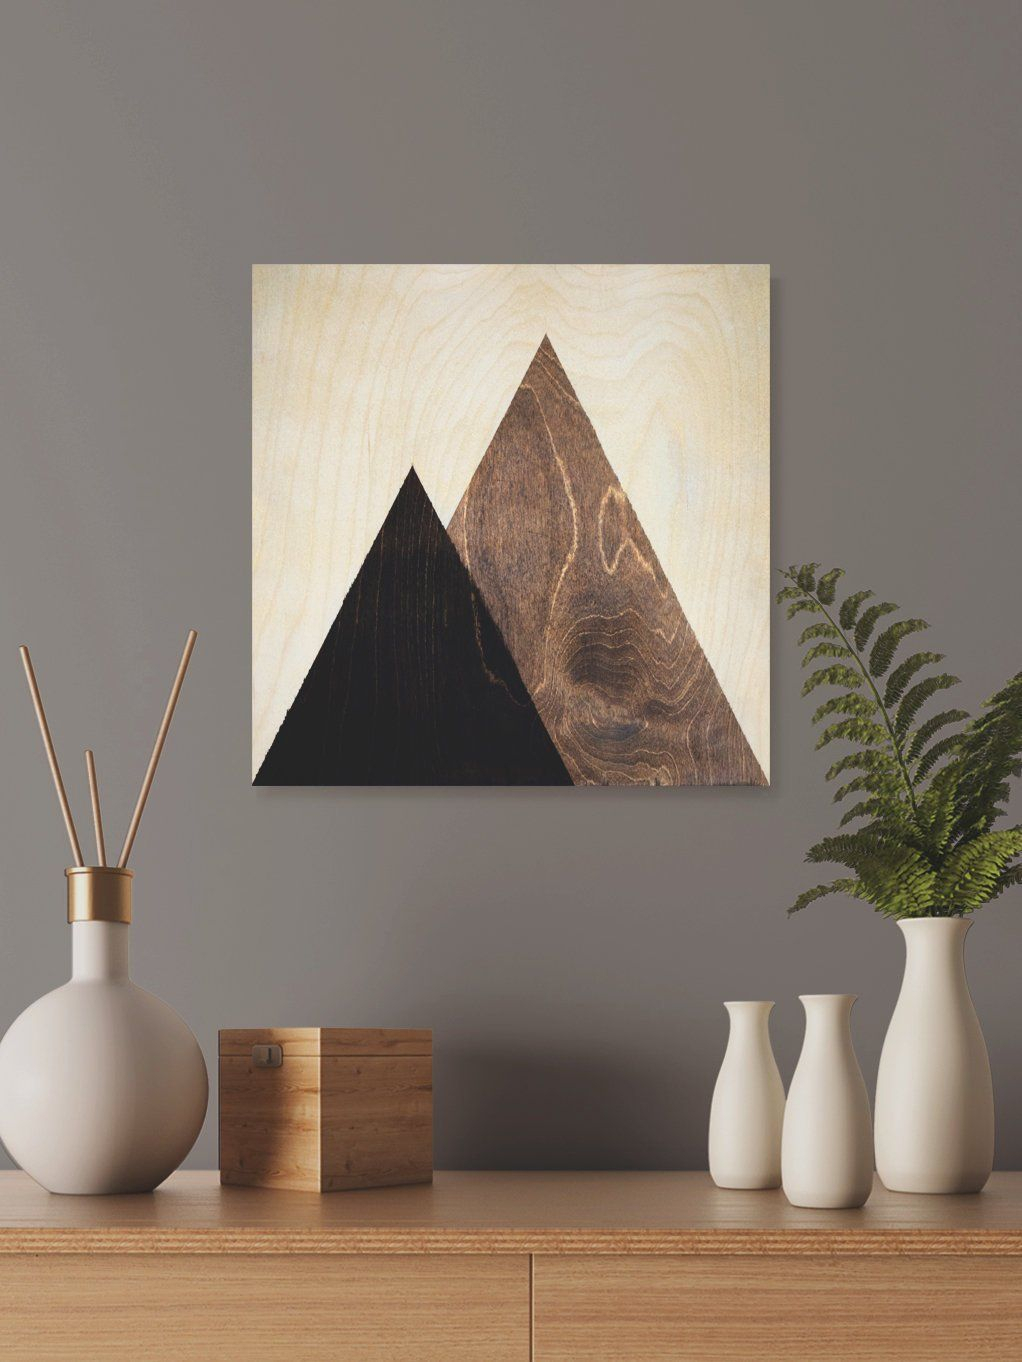 Contemporary Mountain Wall Decor, Dorm Wall Hanging Gift in Contemporary Geometric Wall Decor (Image 10 of 30)